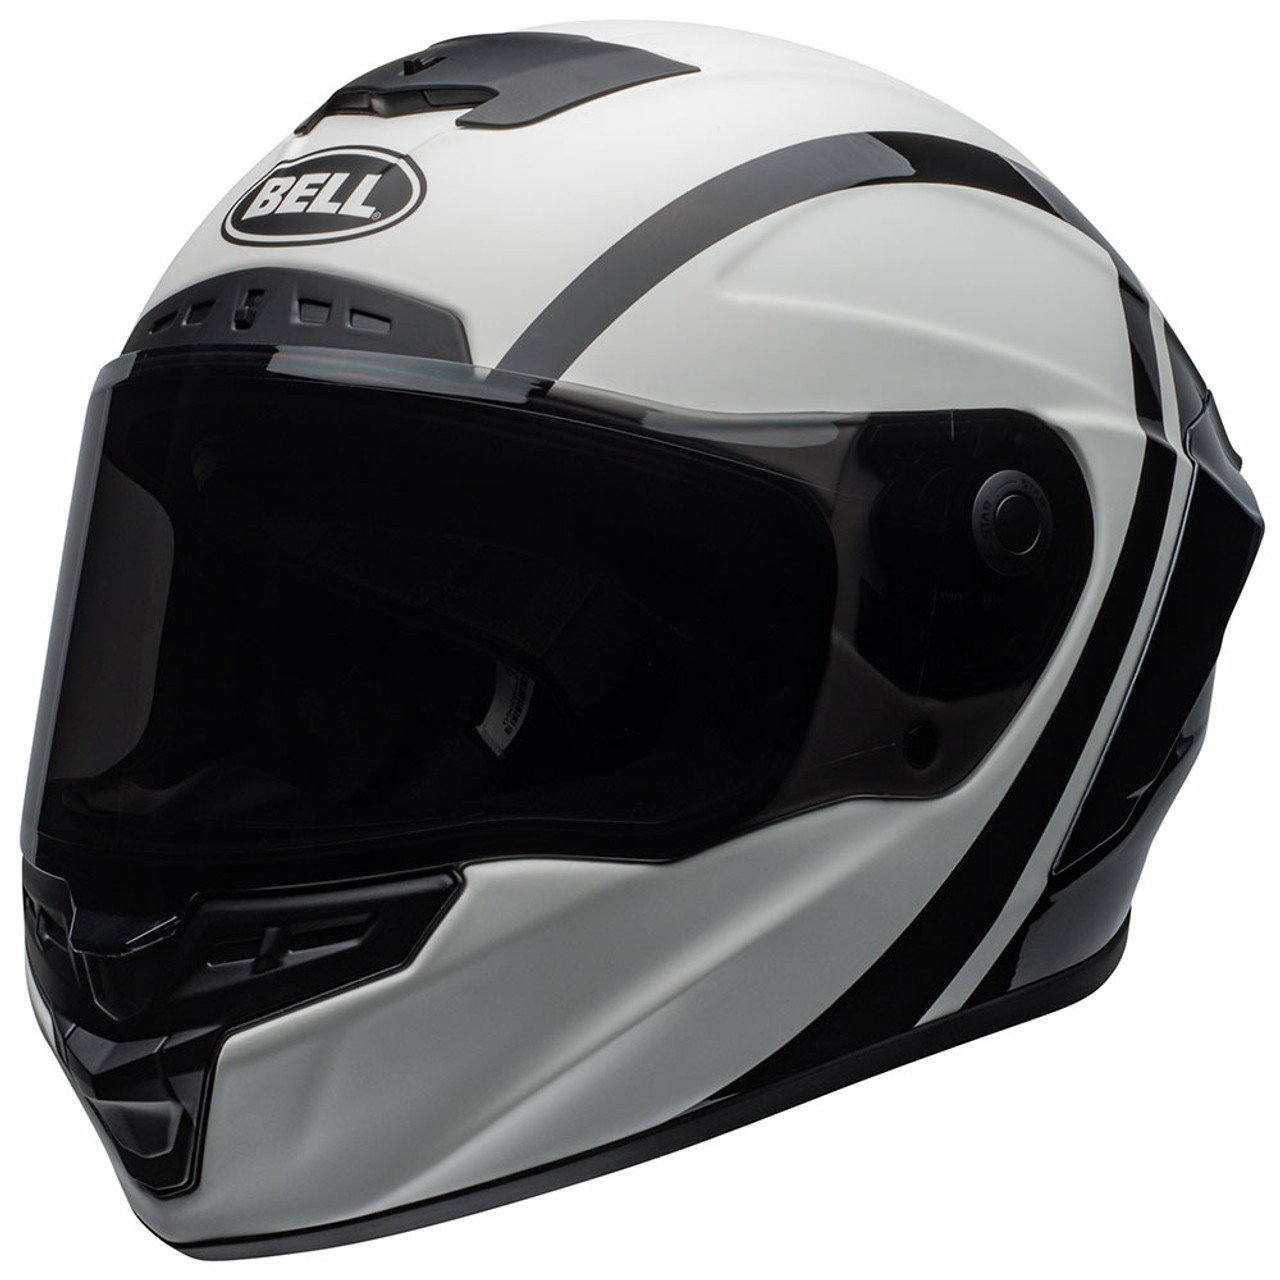 7833cafc Bell Qualifier Dlx Mips Matte Black Full Face Helmet : Ash Cycles